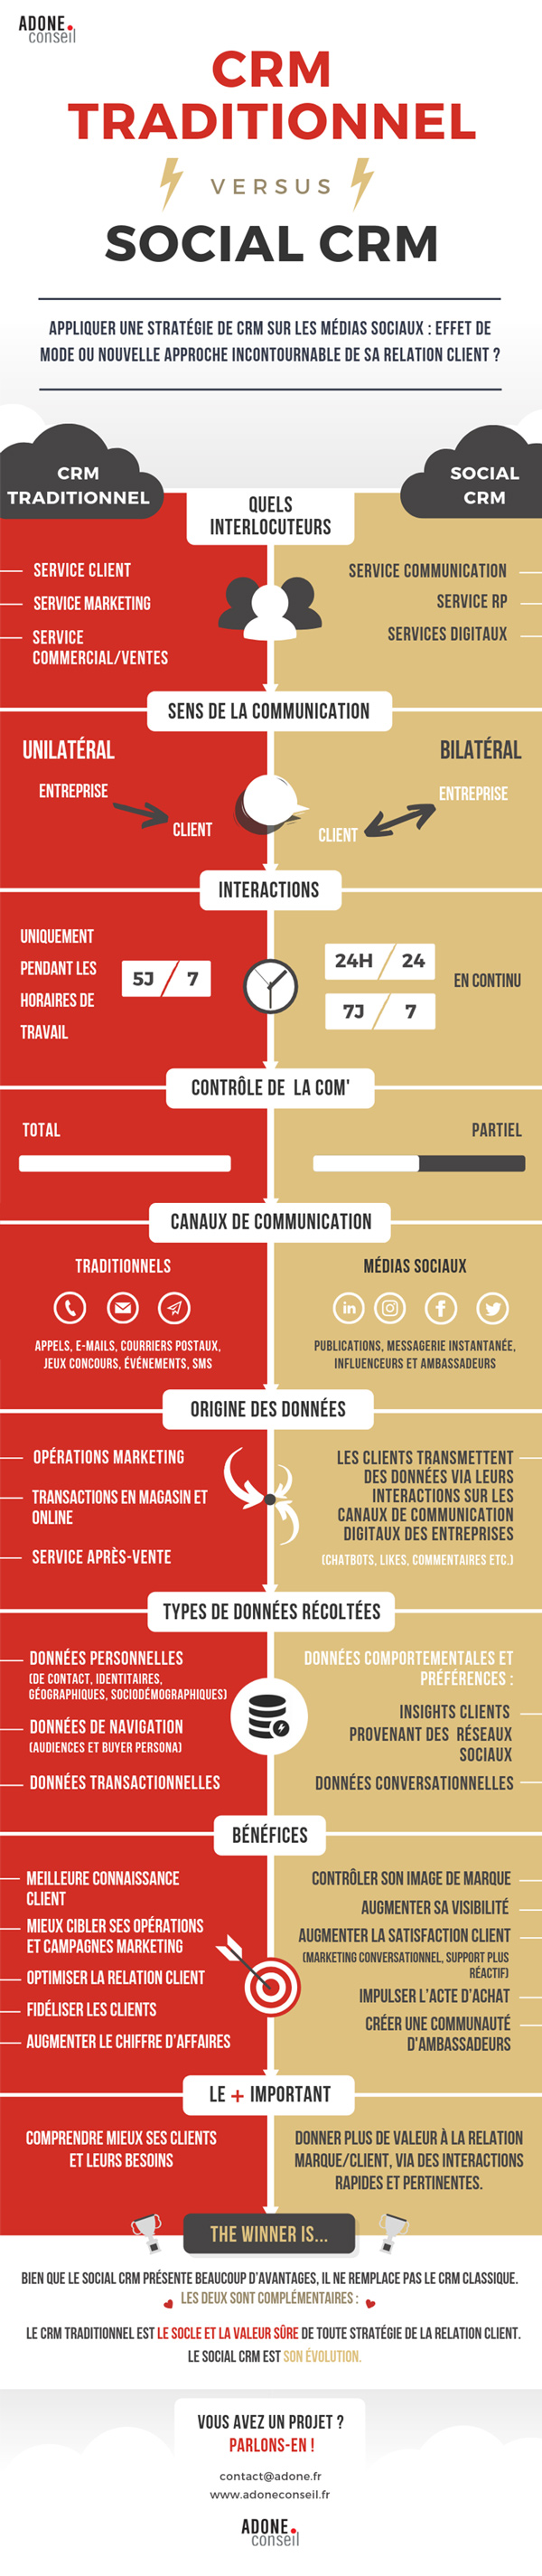 Infographie comparative, le social CRM face au CRM traditionnel